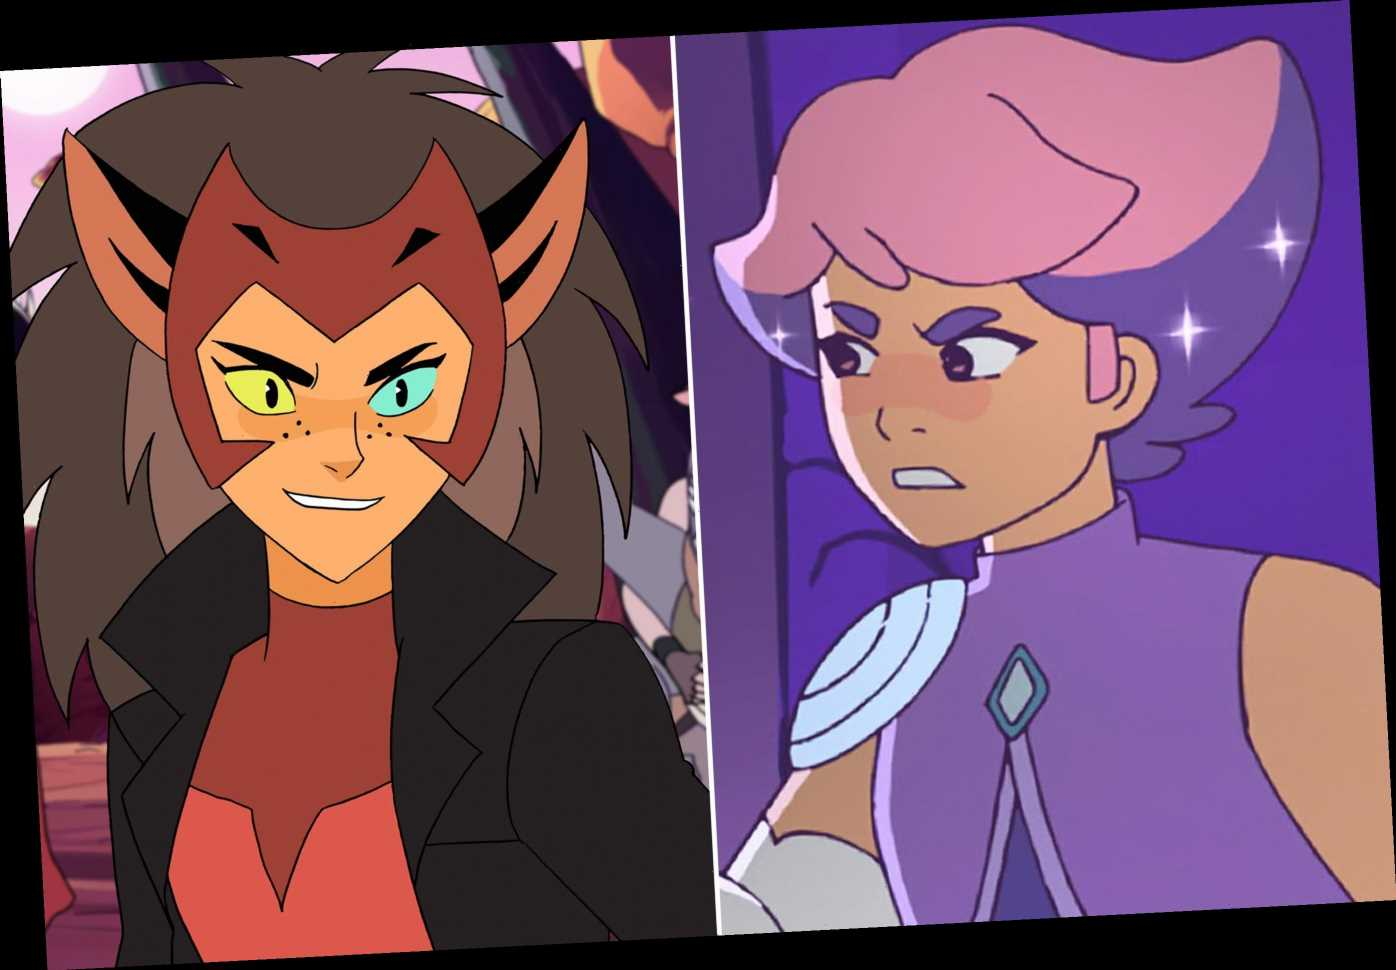 She-Ra cast tease new roles for Glimmer, Catra in season 4